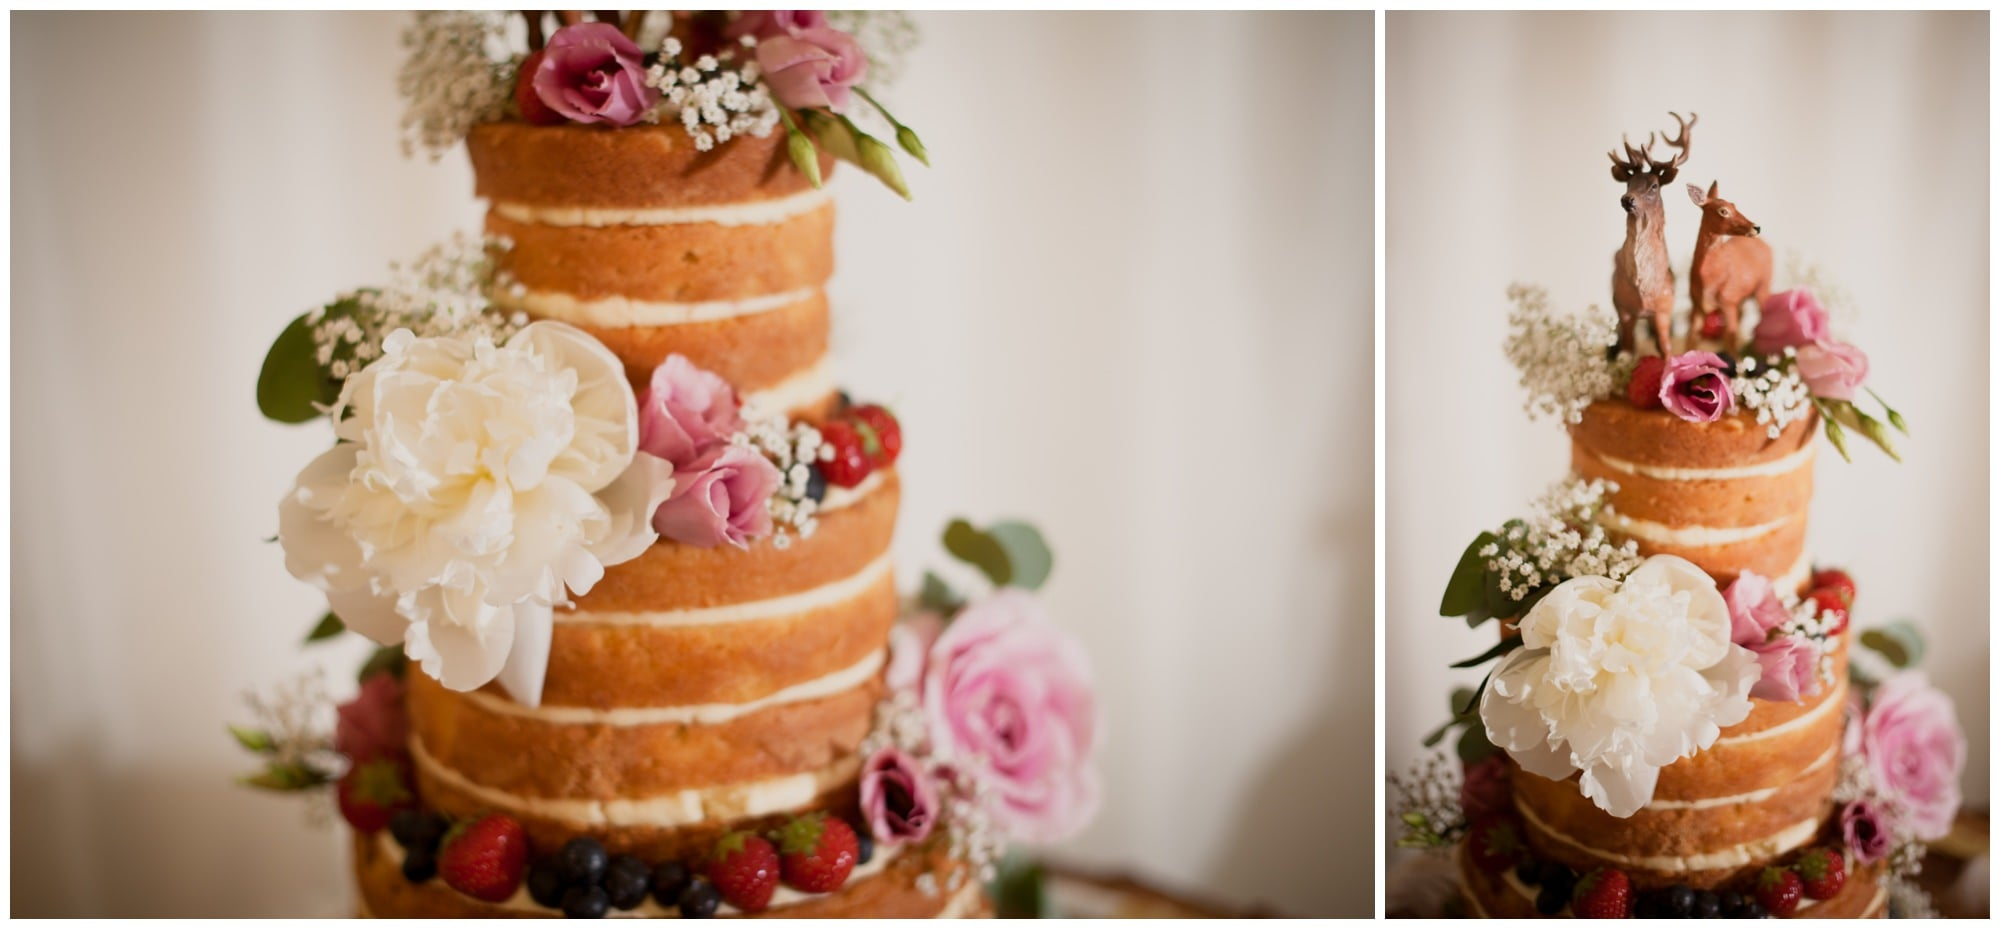 Naked Cake by Sweetcheeks Bakehouse